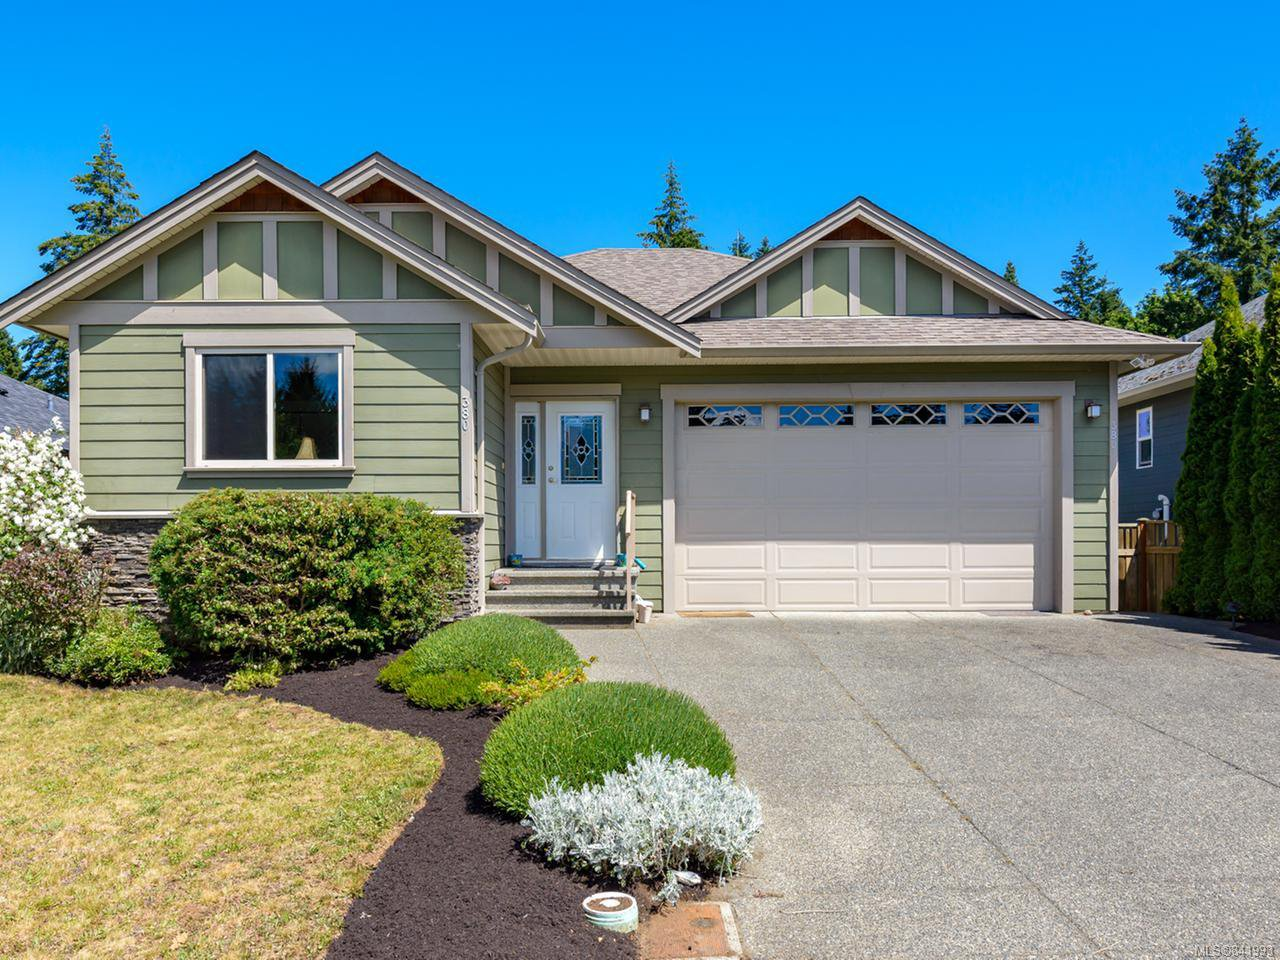 Main Photo: 380 Forester Ave in COMOX: CV Comox (Town of) Single Family Detached for sale (Comox Valley)  : MLS®# 841993